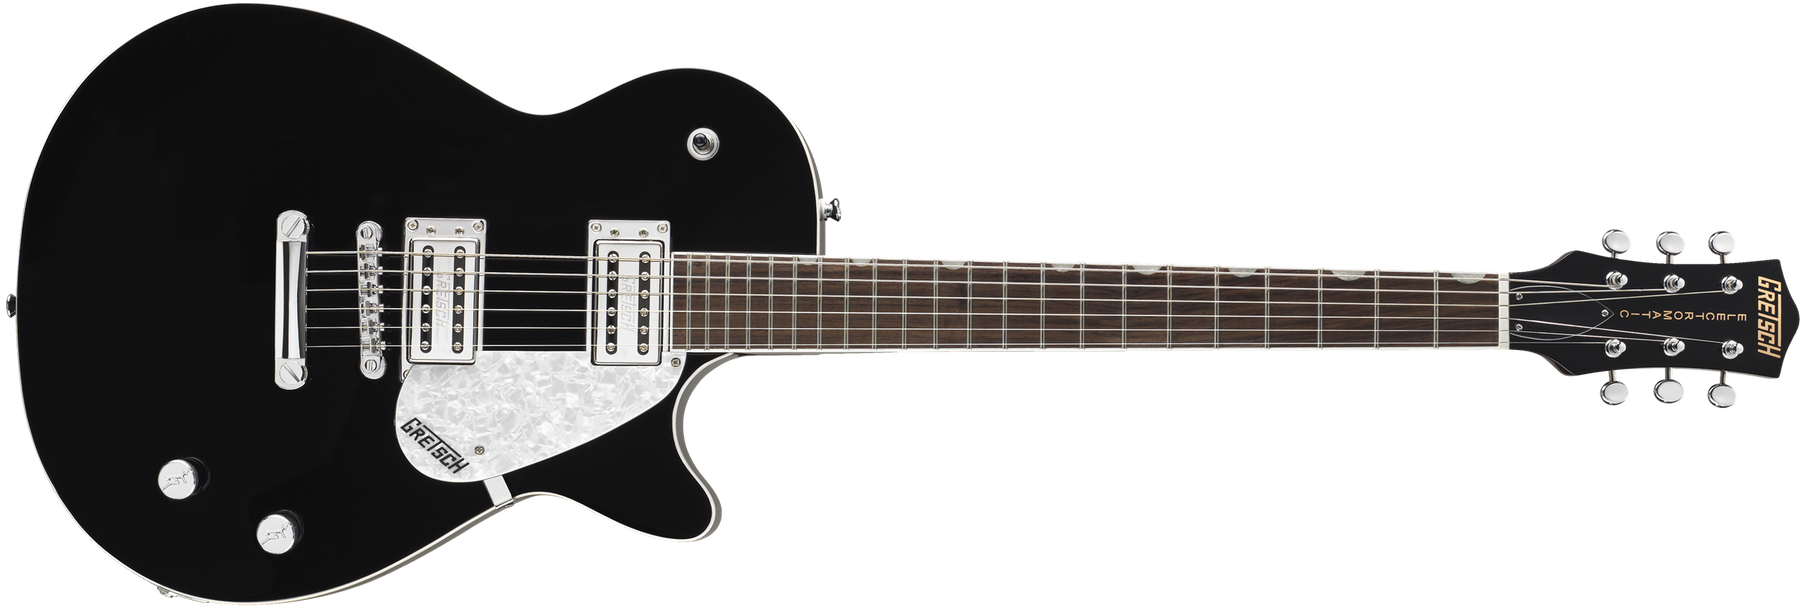 Gretsch G5425 Electromatic® Jet Club, Rosewood Fingerboard, Black